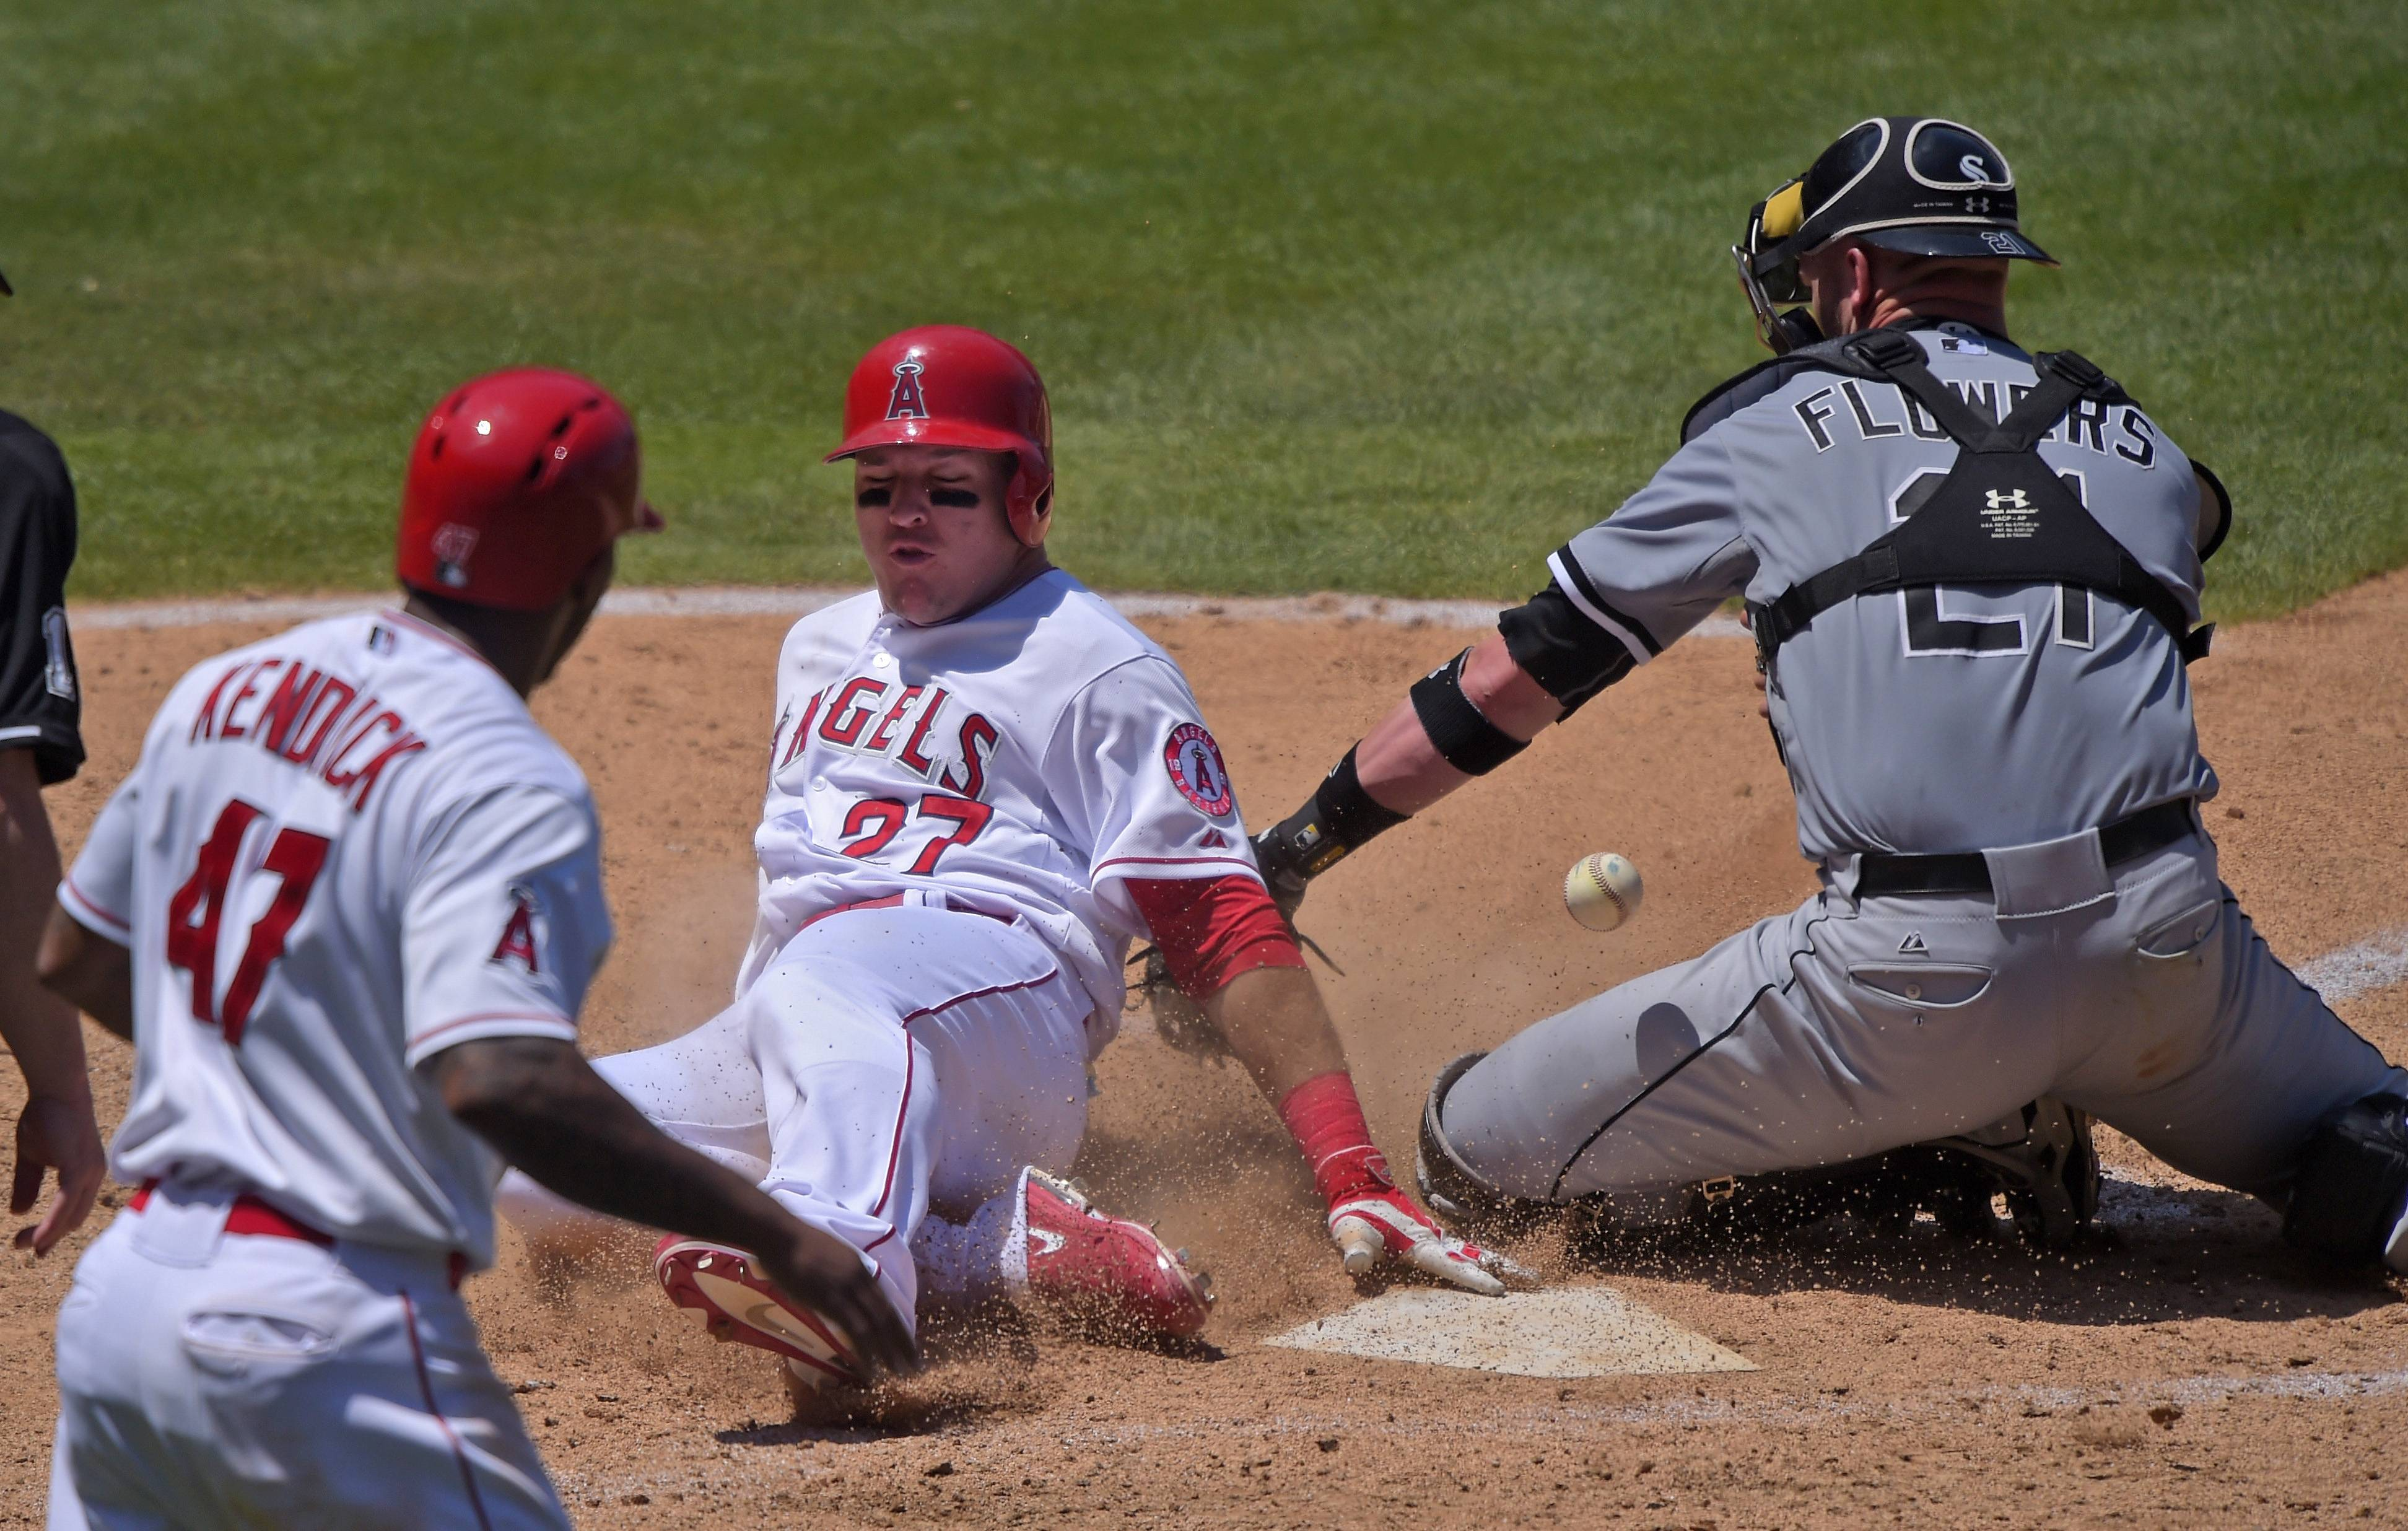 Los Angeles Angels' Mike Trout, center, scores on an RBI double by Josh Hamilton as Chicago White Sox catcher Tyler Flowers, right, loses the ball and Howie Kendrick looks on as during the fifth inning of a baseball game, Sunday, June 8, 2014, in Anaheim, Calif.